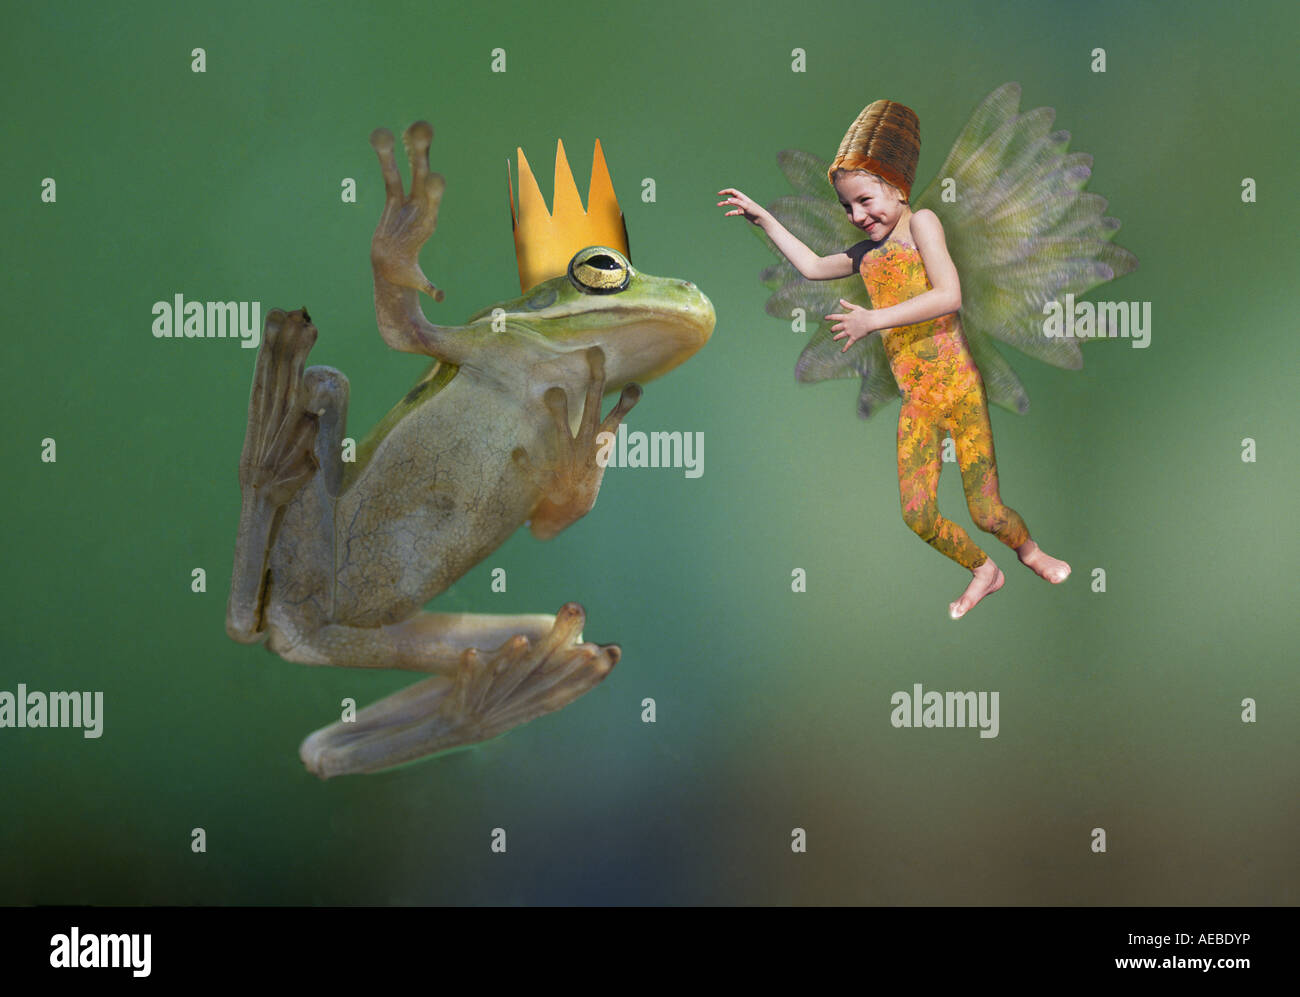 The frog king speaks with a flower fairy - Stock Image